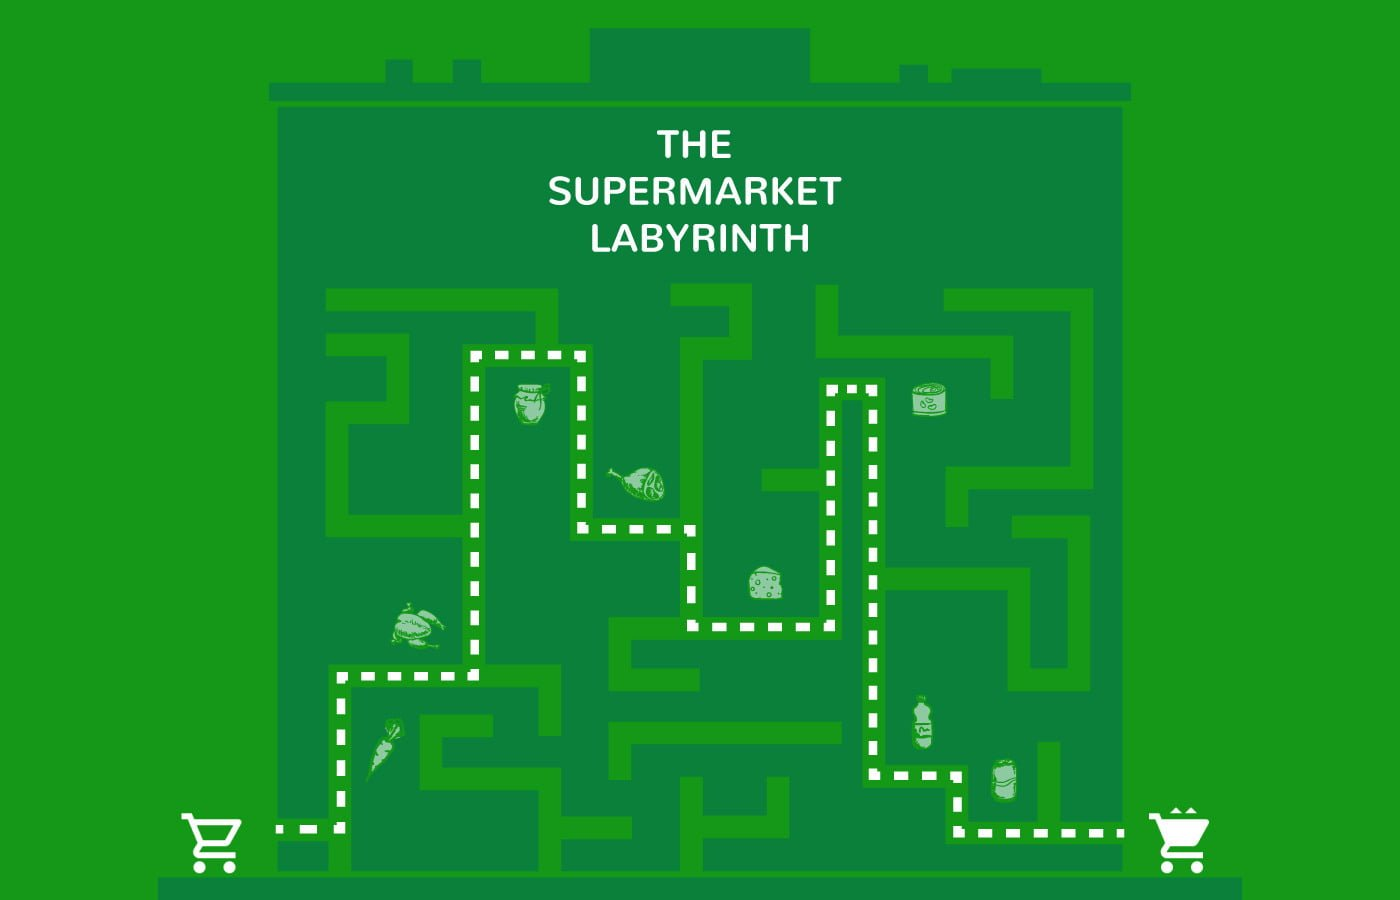 The Supermarket Labyrinth